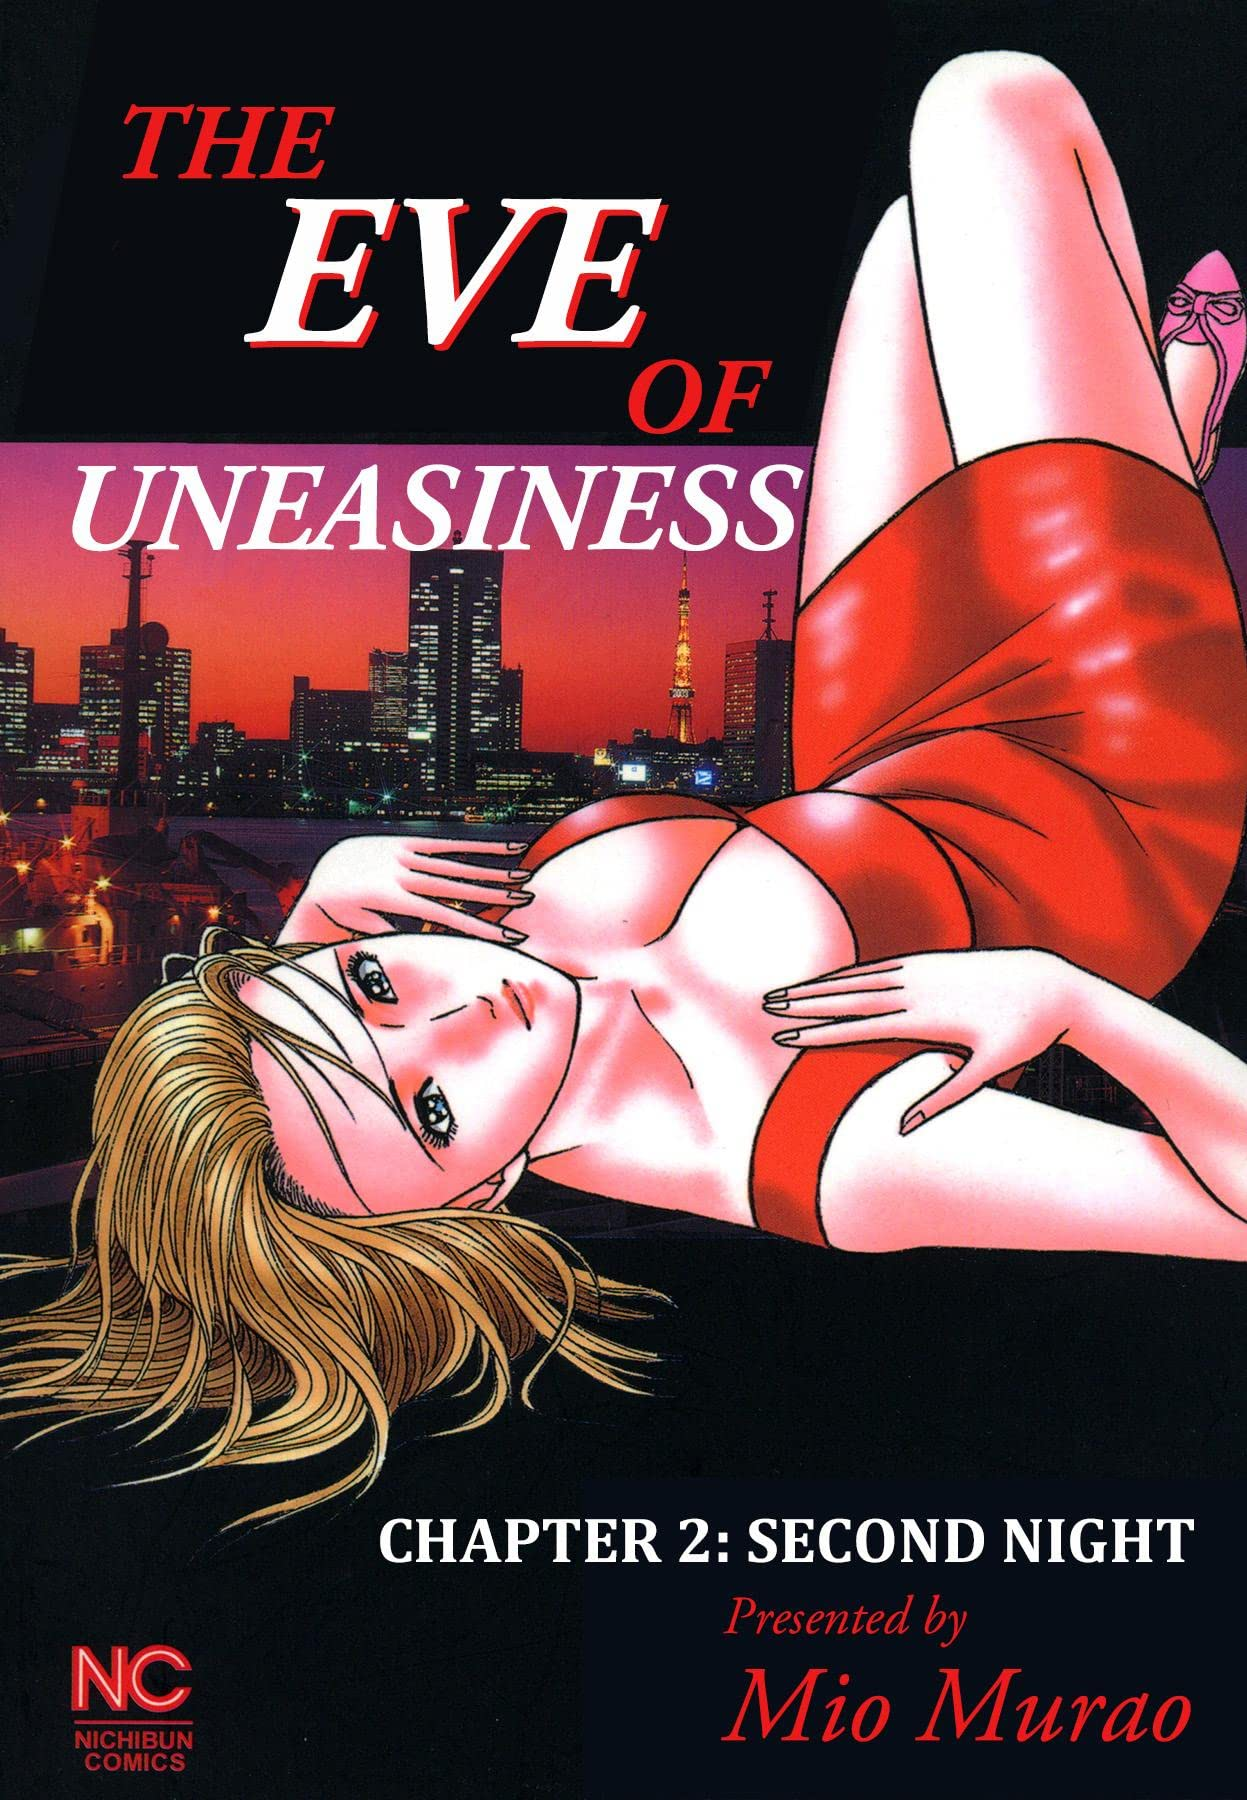 THE EVE OF UNEASINESS #7